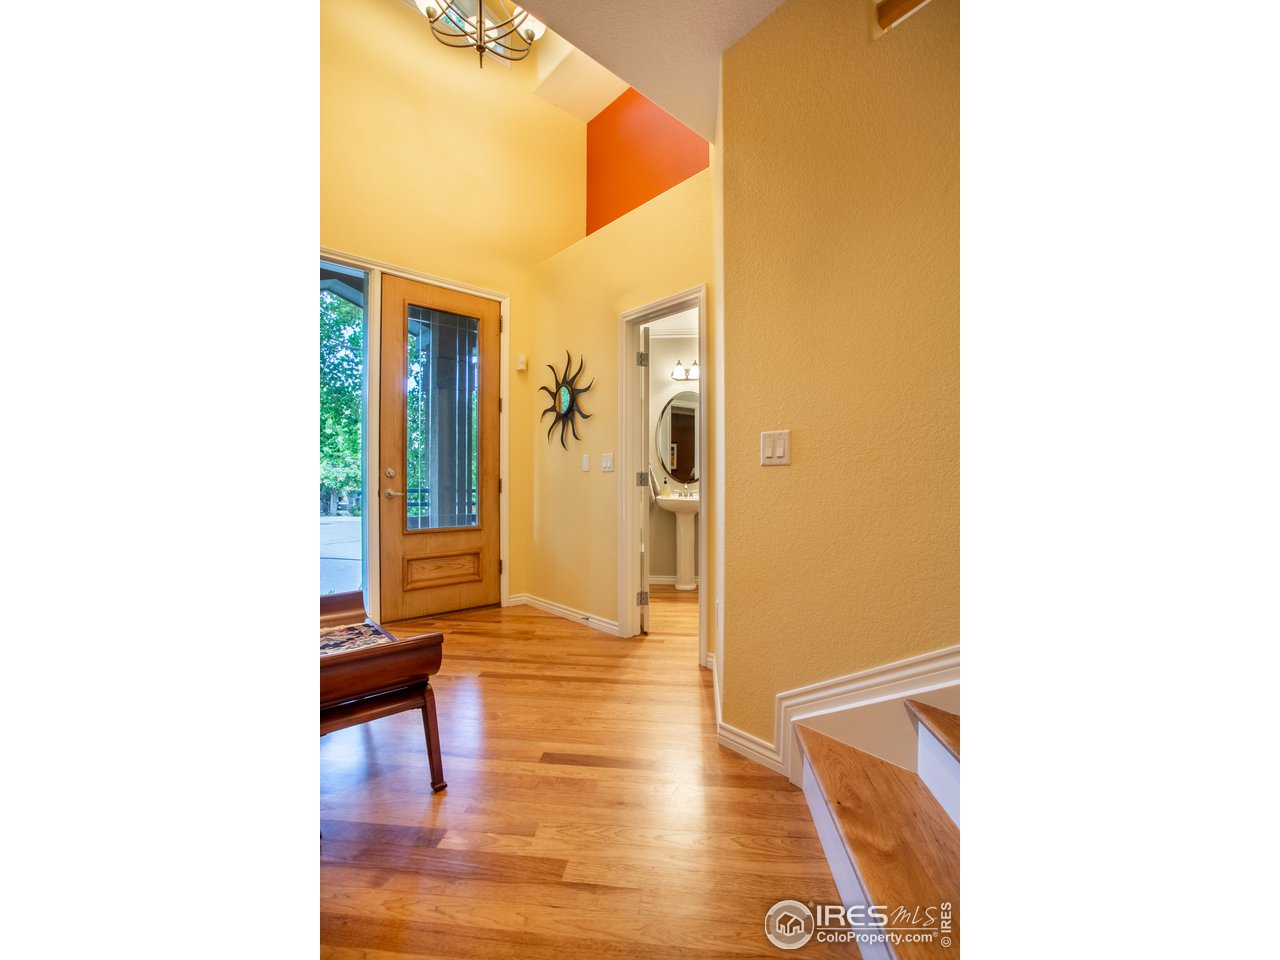 Entry hall leads main level dining room & kitchen